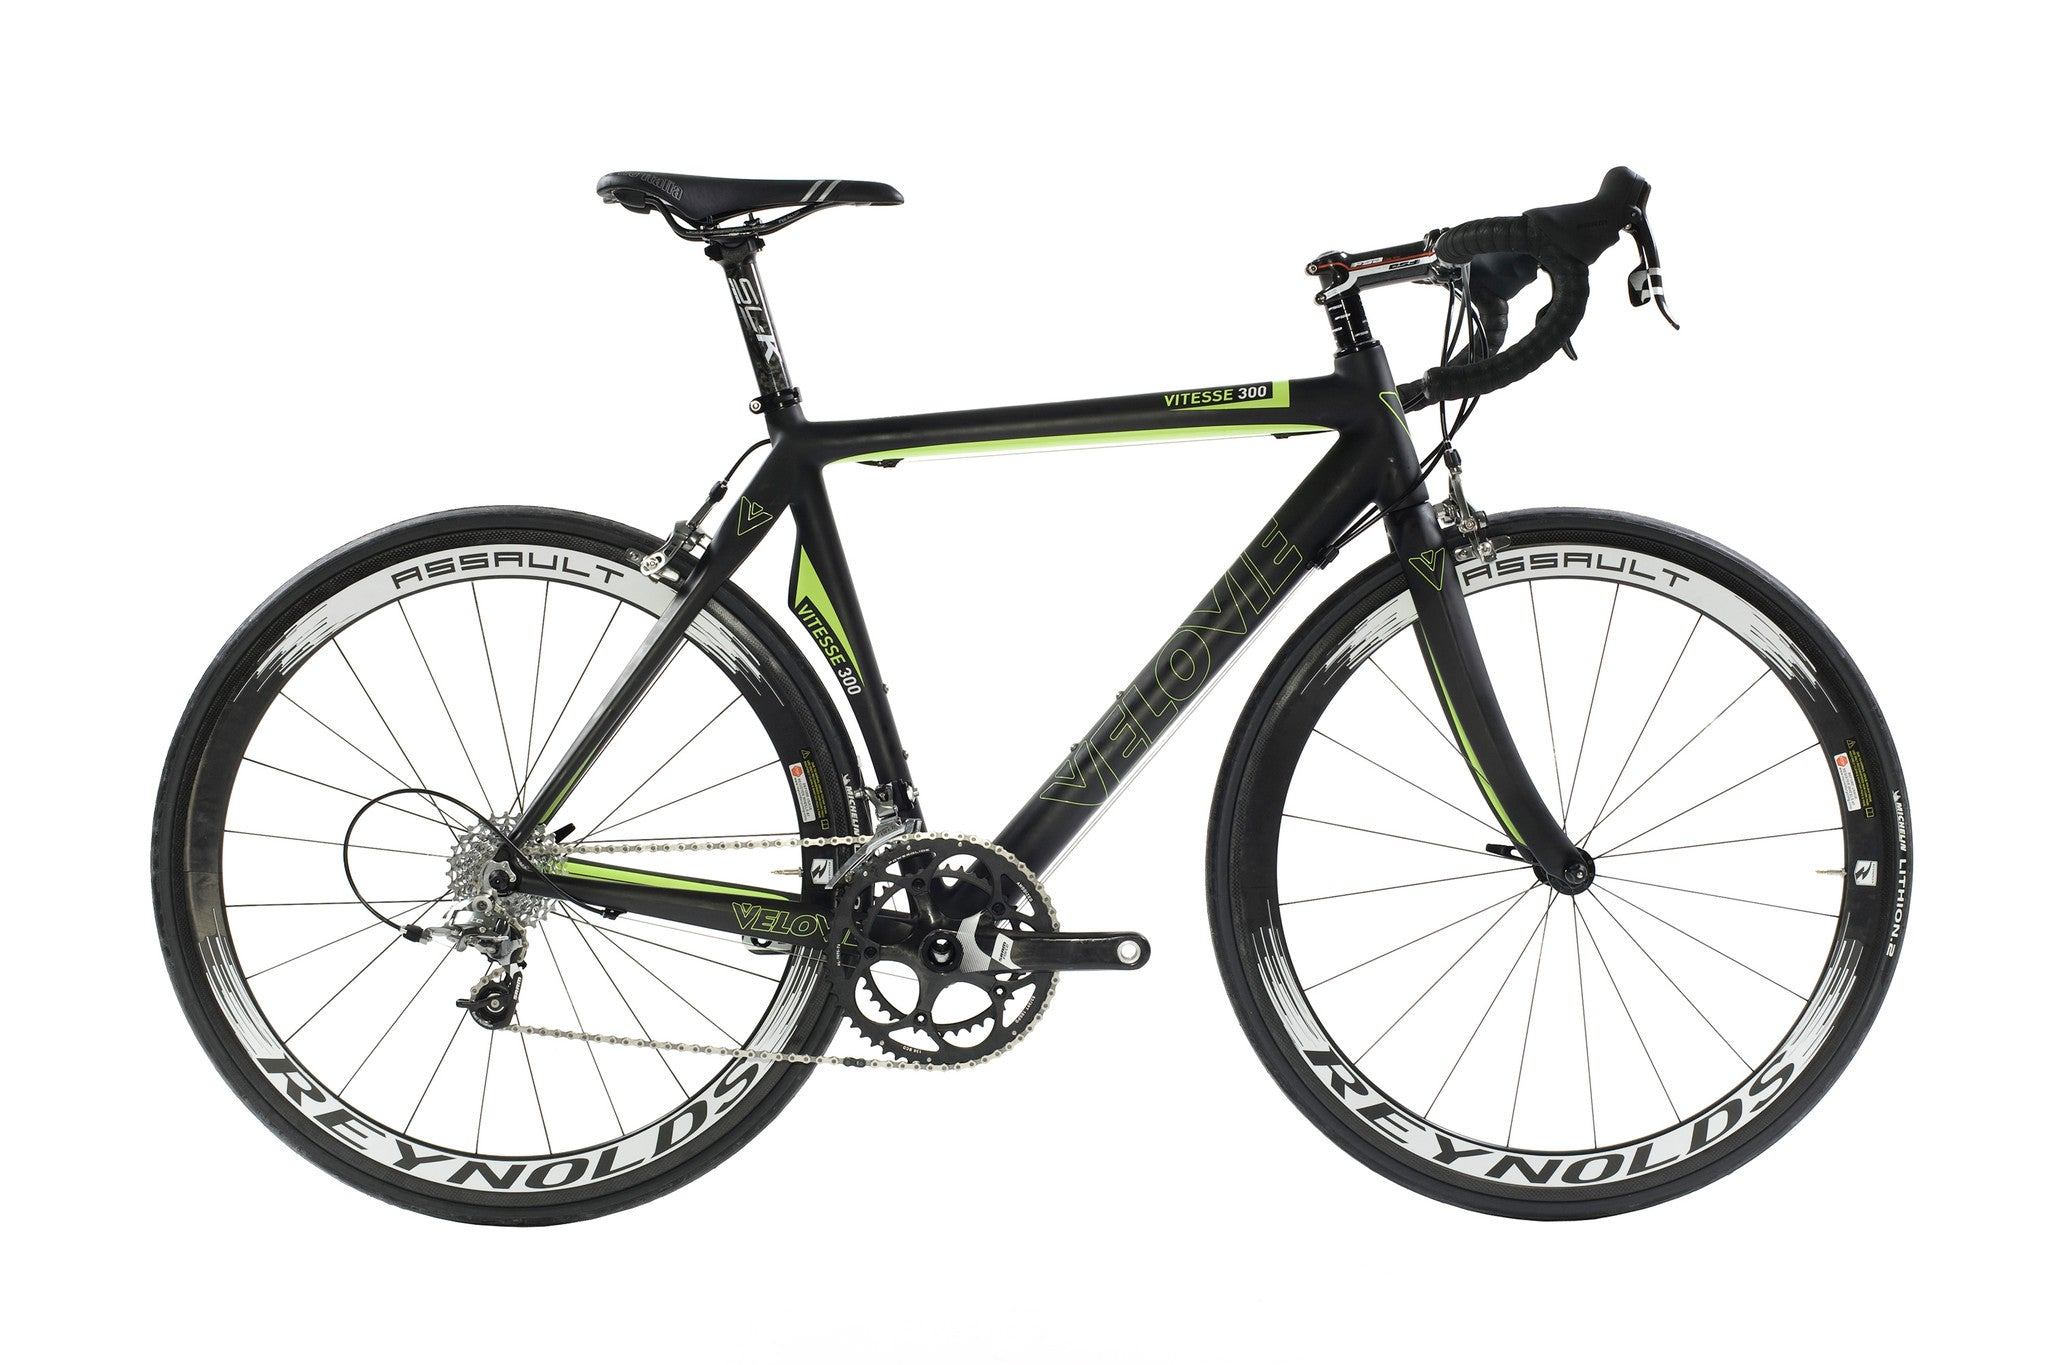 Vitesse 300 besides 118712140154789653 besides Post vector Bike Tracks 42220 likewise Road bikes moreover Shimano Steps E Bike System 1742. on falling off bike